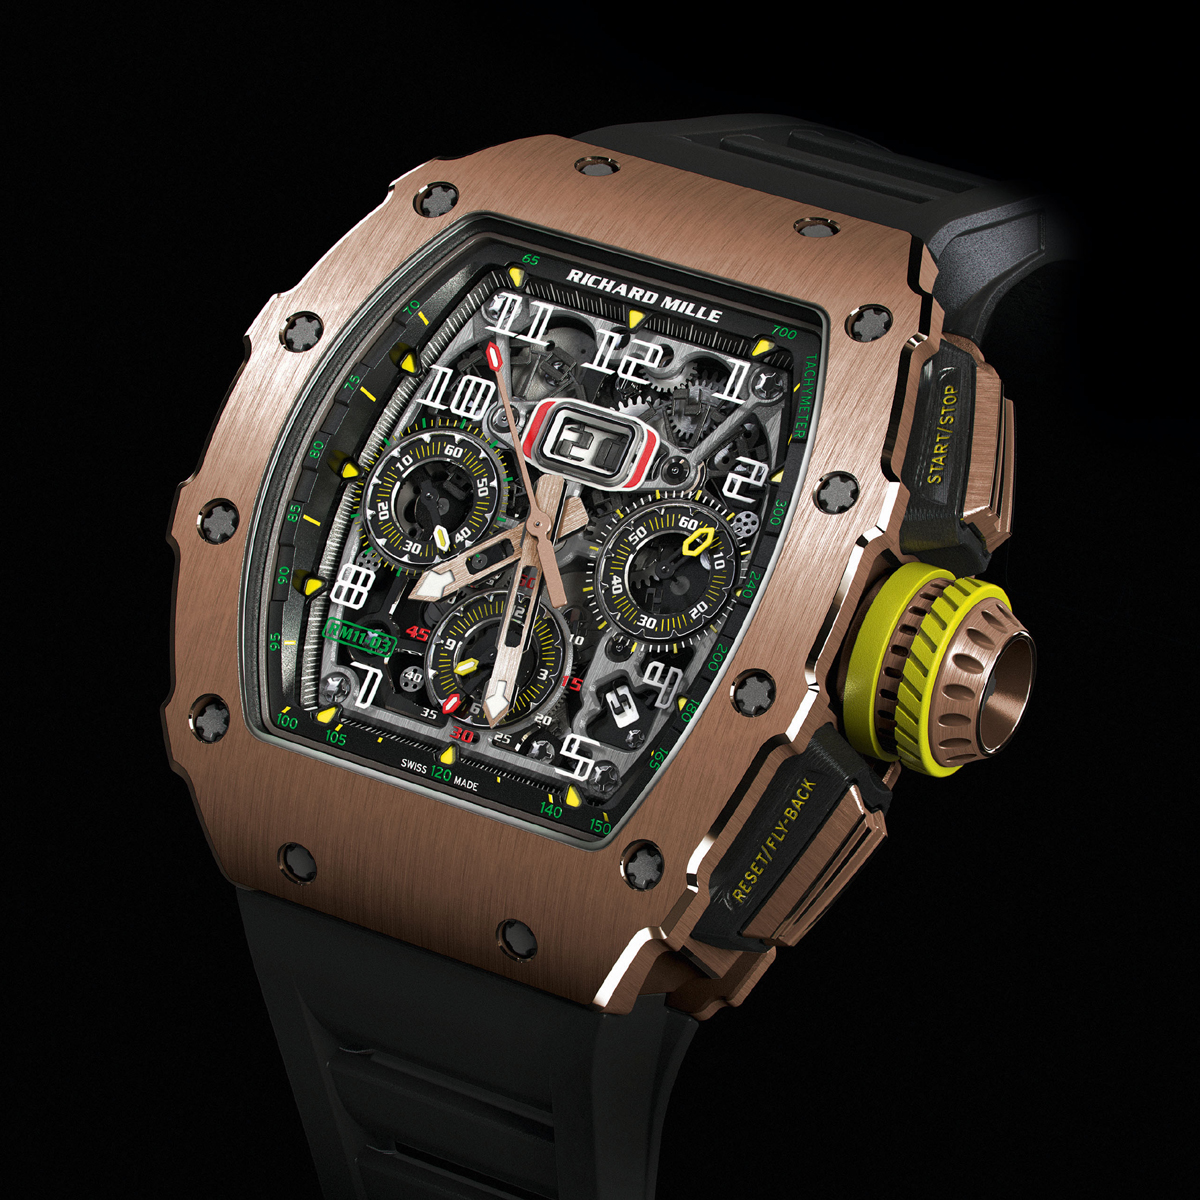 Richard Mille RM11-03 gold watch chronograph mens watch